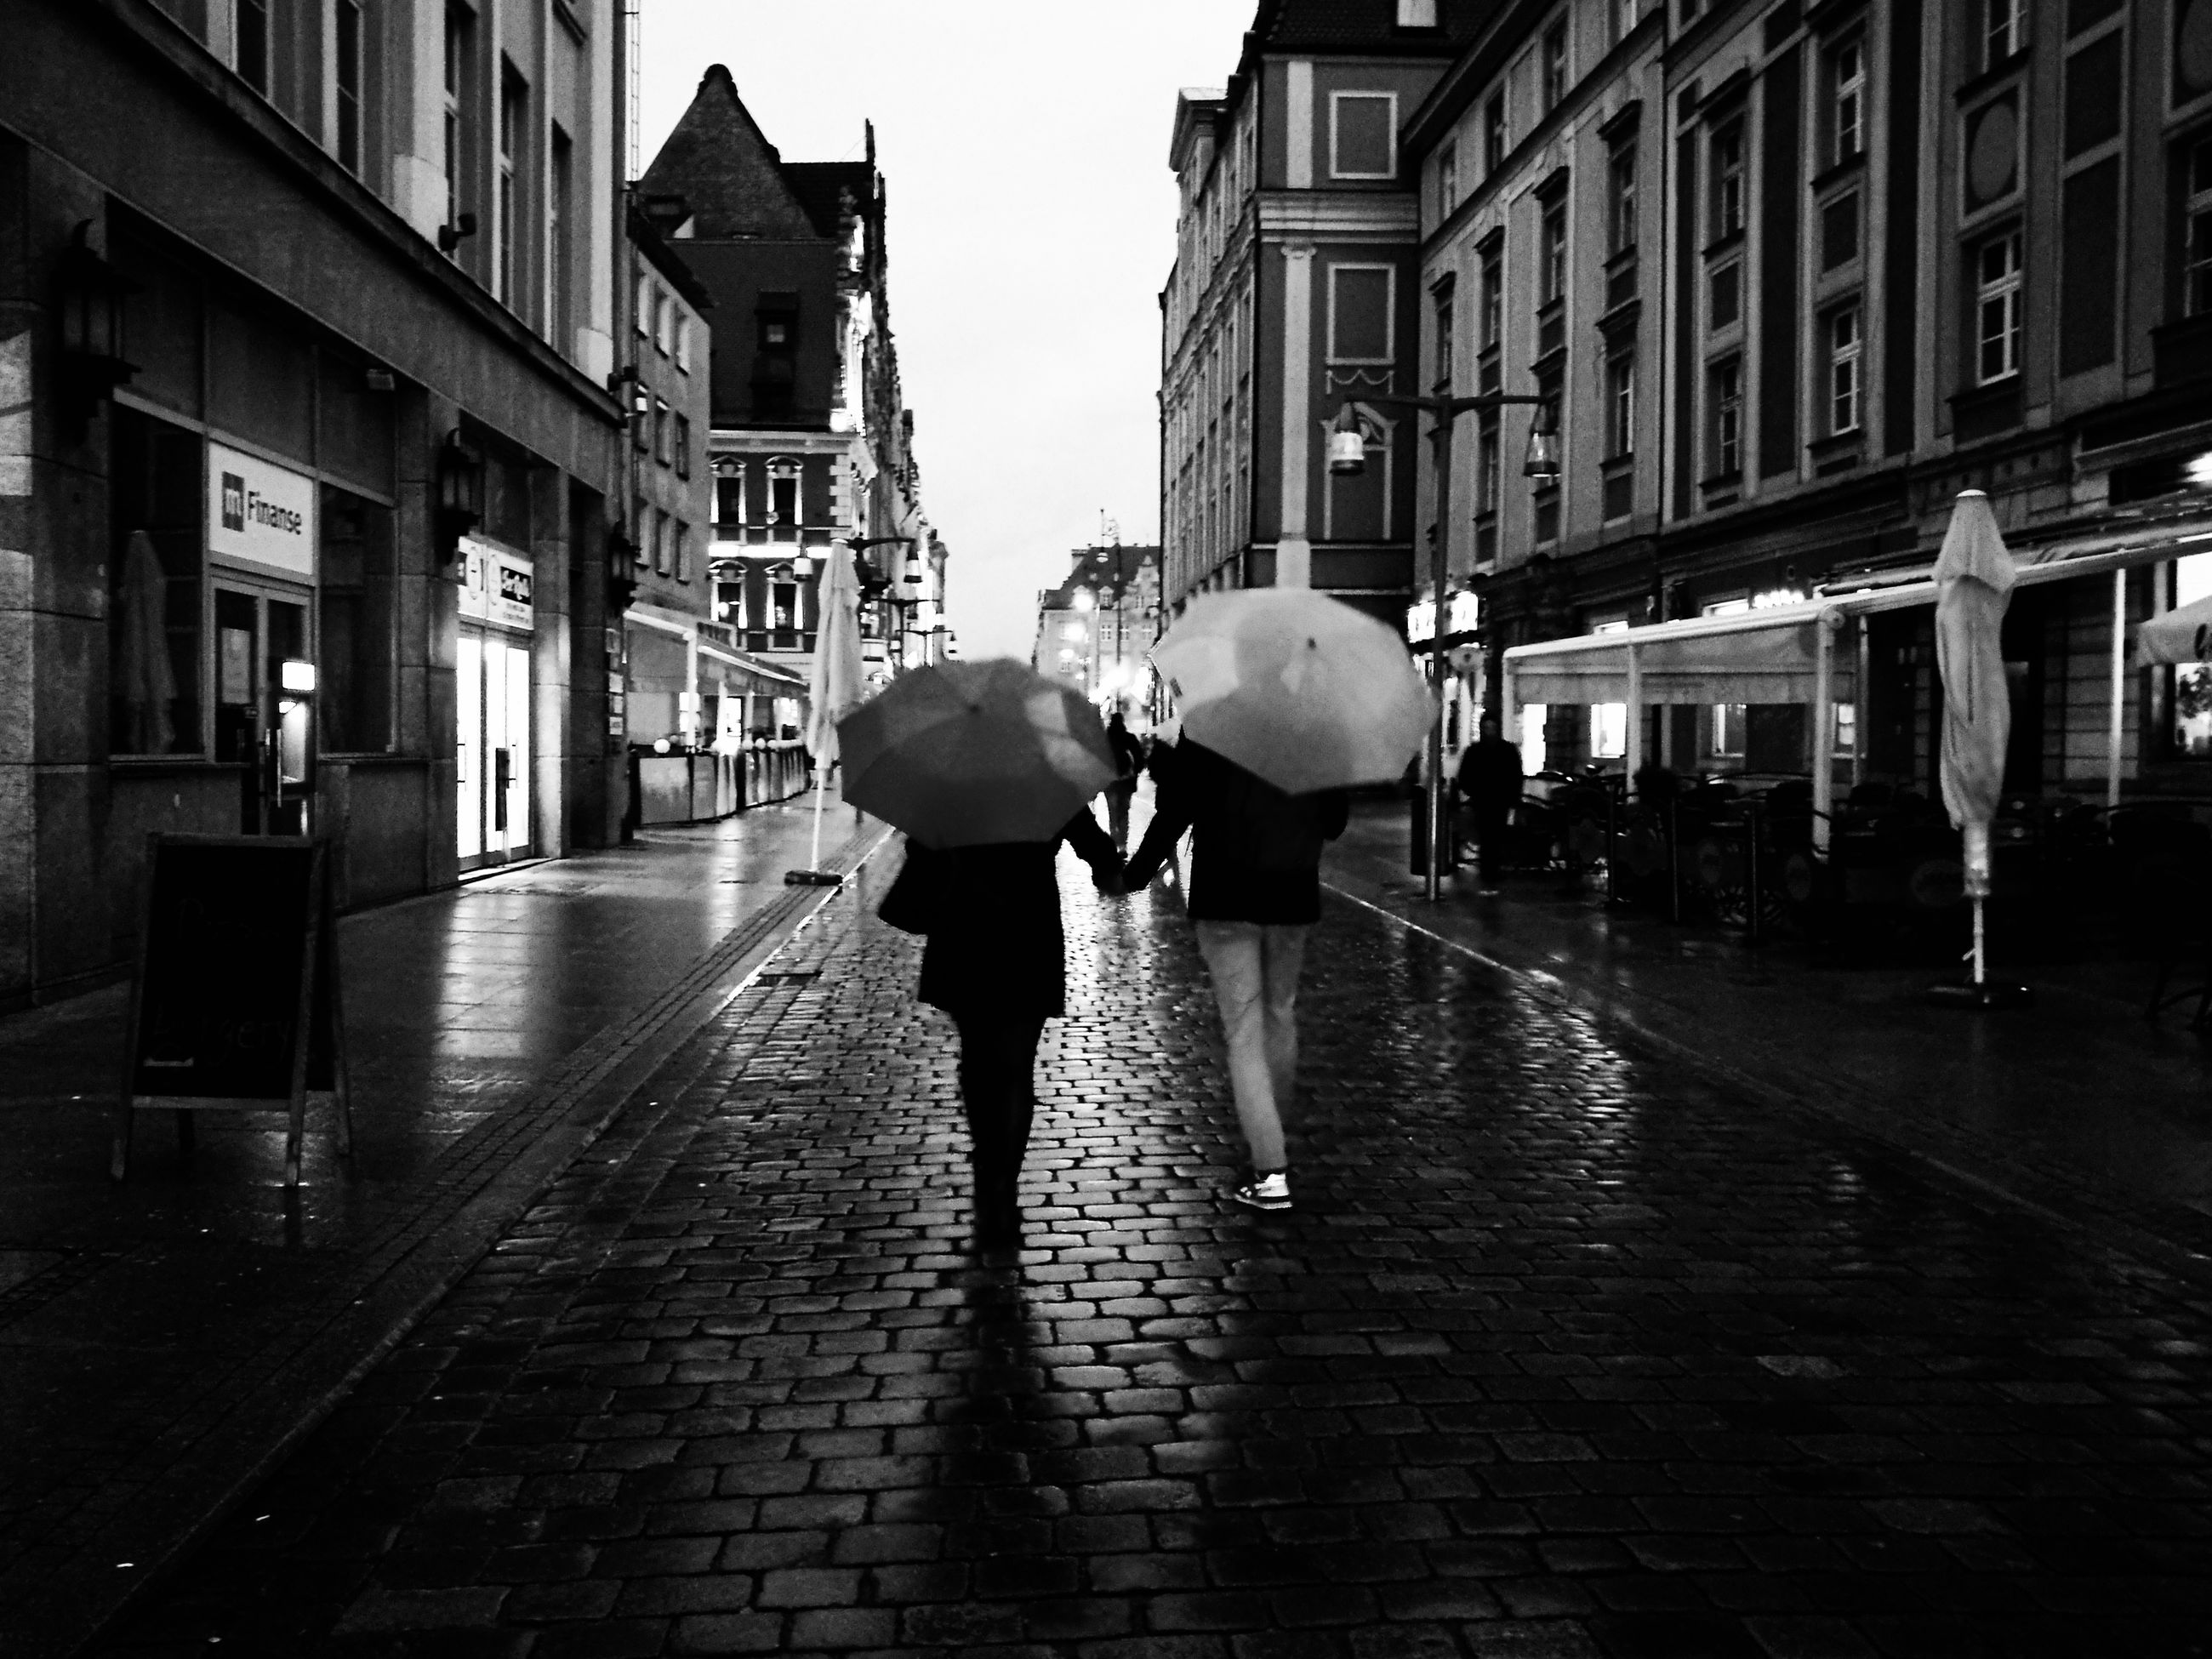 architecture, building exterior, built structure, wet, street, rain, walking, full length, men, city, rear view, season, city street, water, person, day, city life, footpath, the way forward, sky